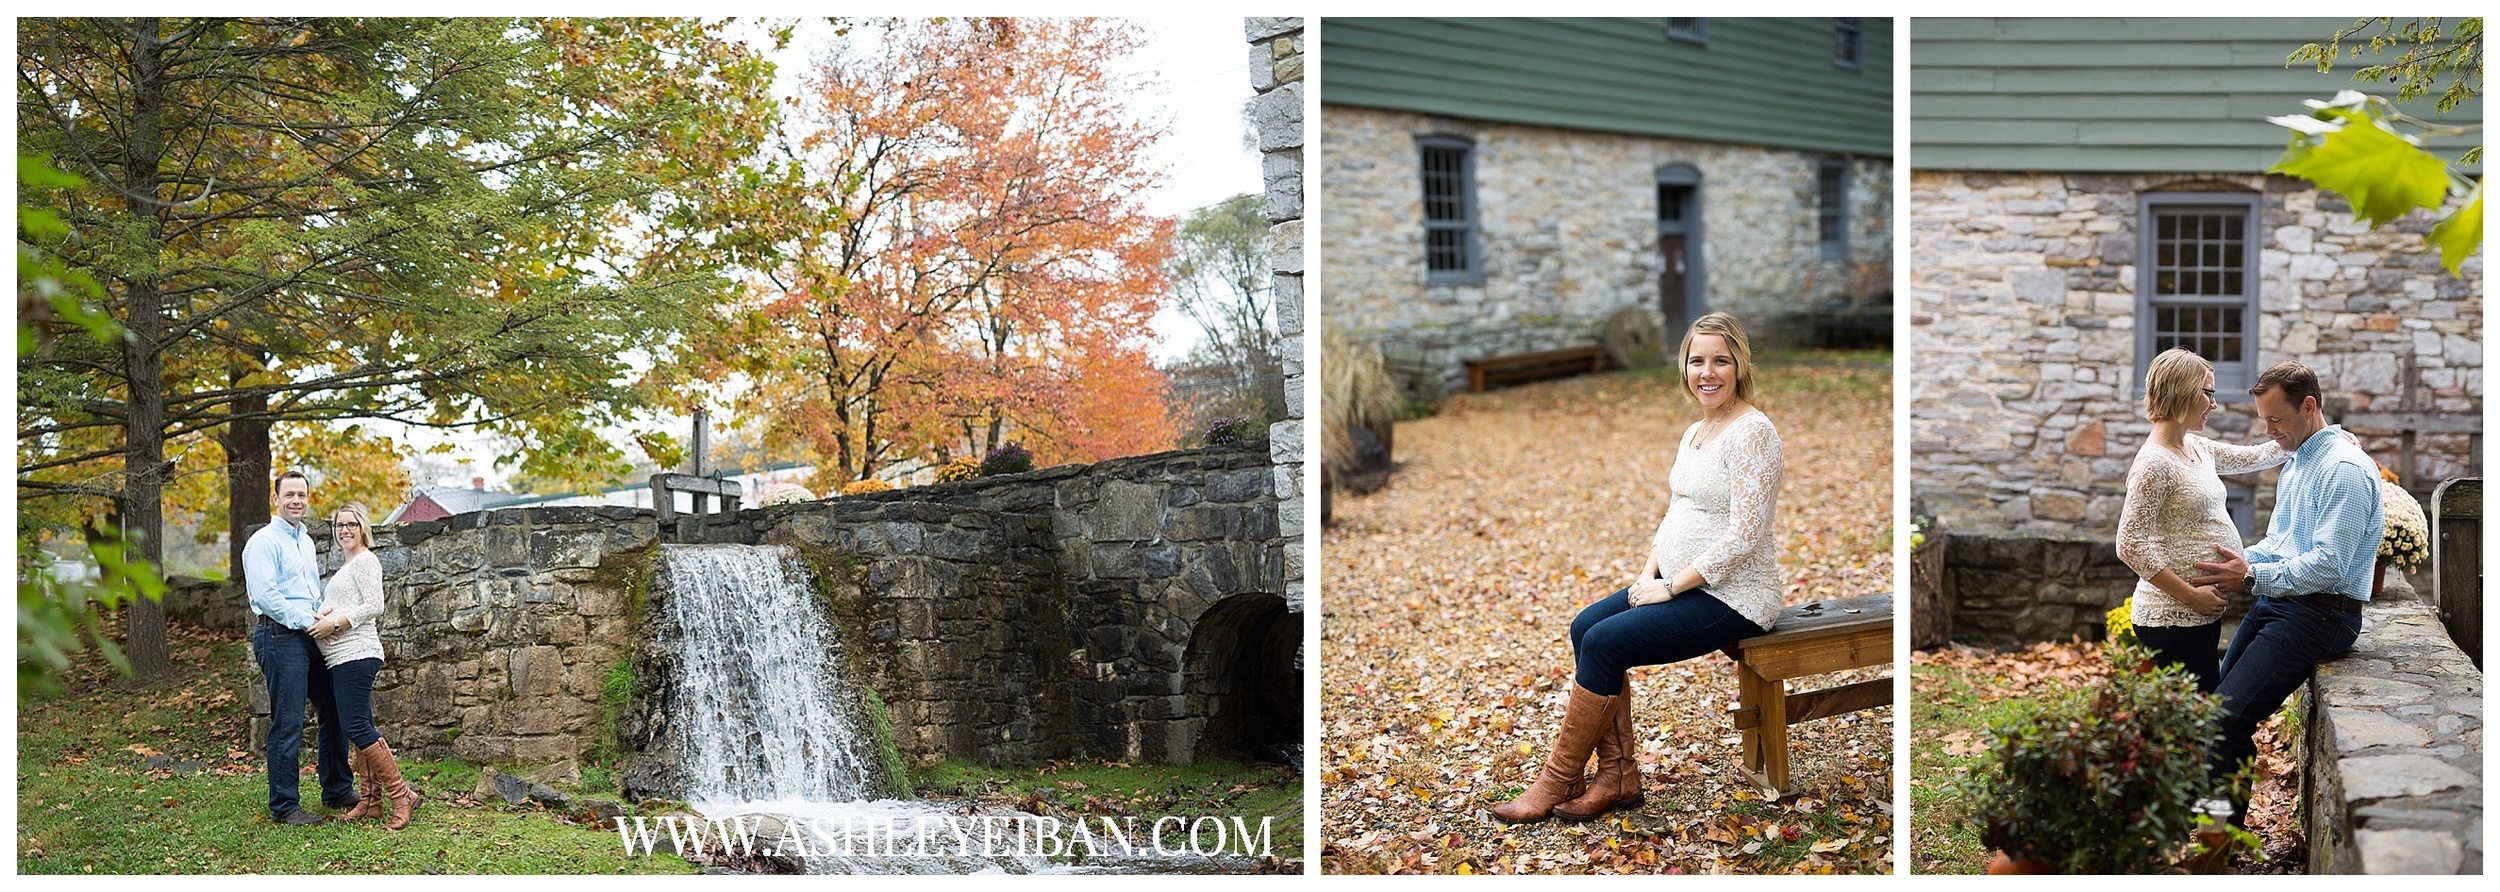 Winchester VA Wedding and Portrait Photographer || Lynchburg, VA Maternity Photographer || Fall Maternity Photos || Ashley Eiban Photography || www.ashleyeiban.com